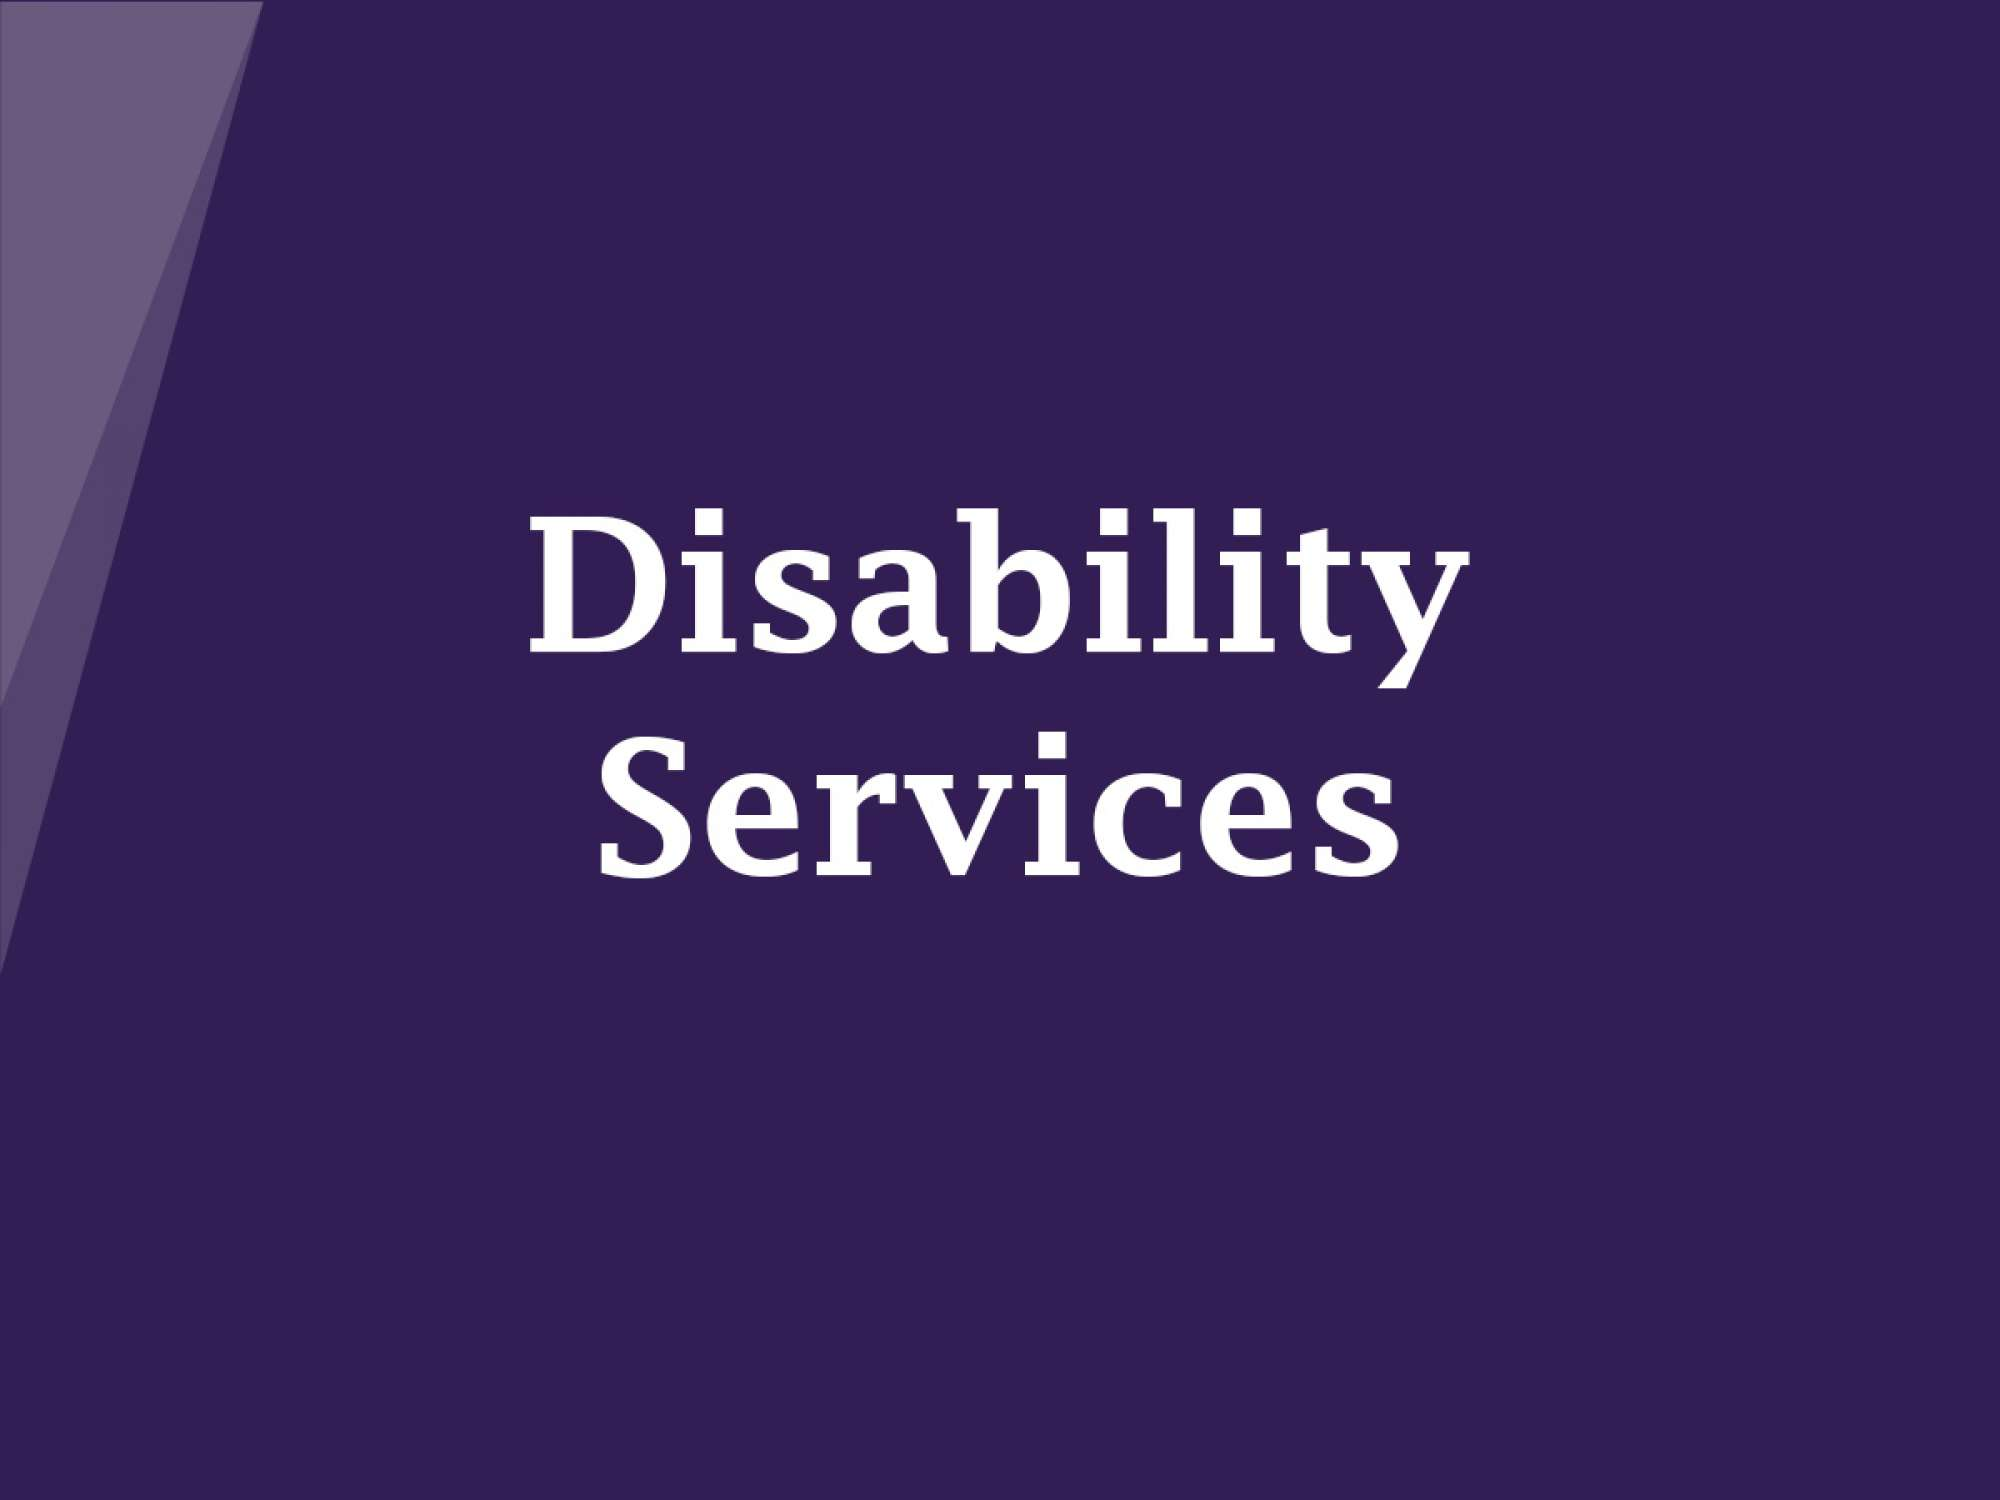 Graphic saying 'Disability Services'